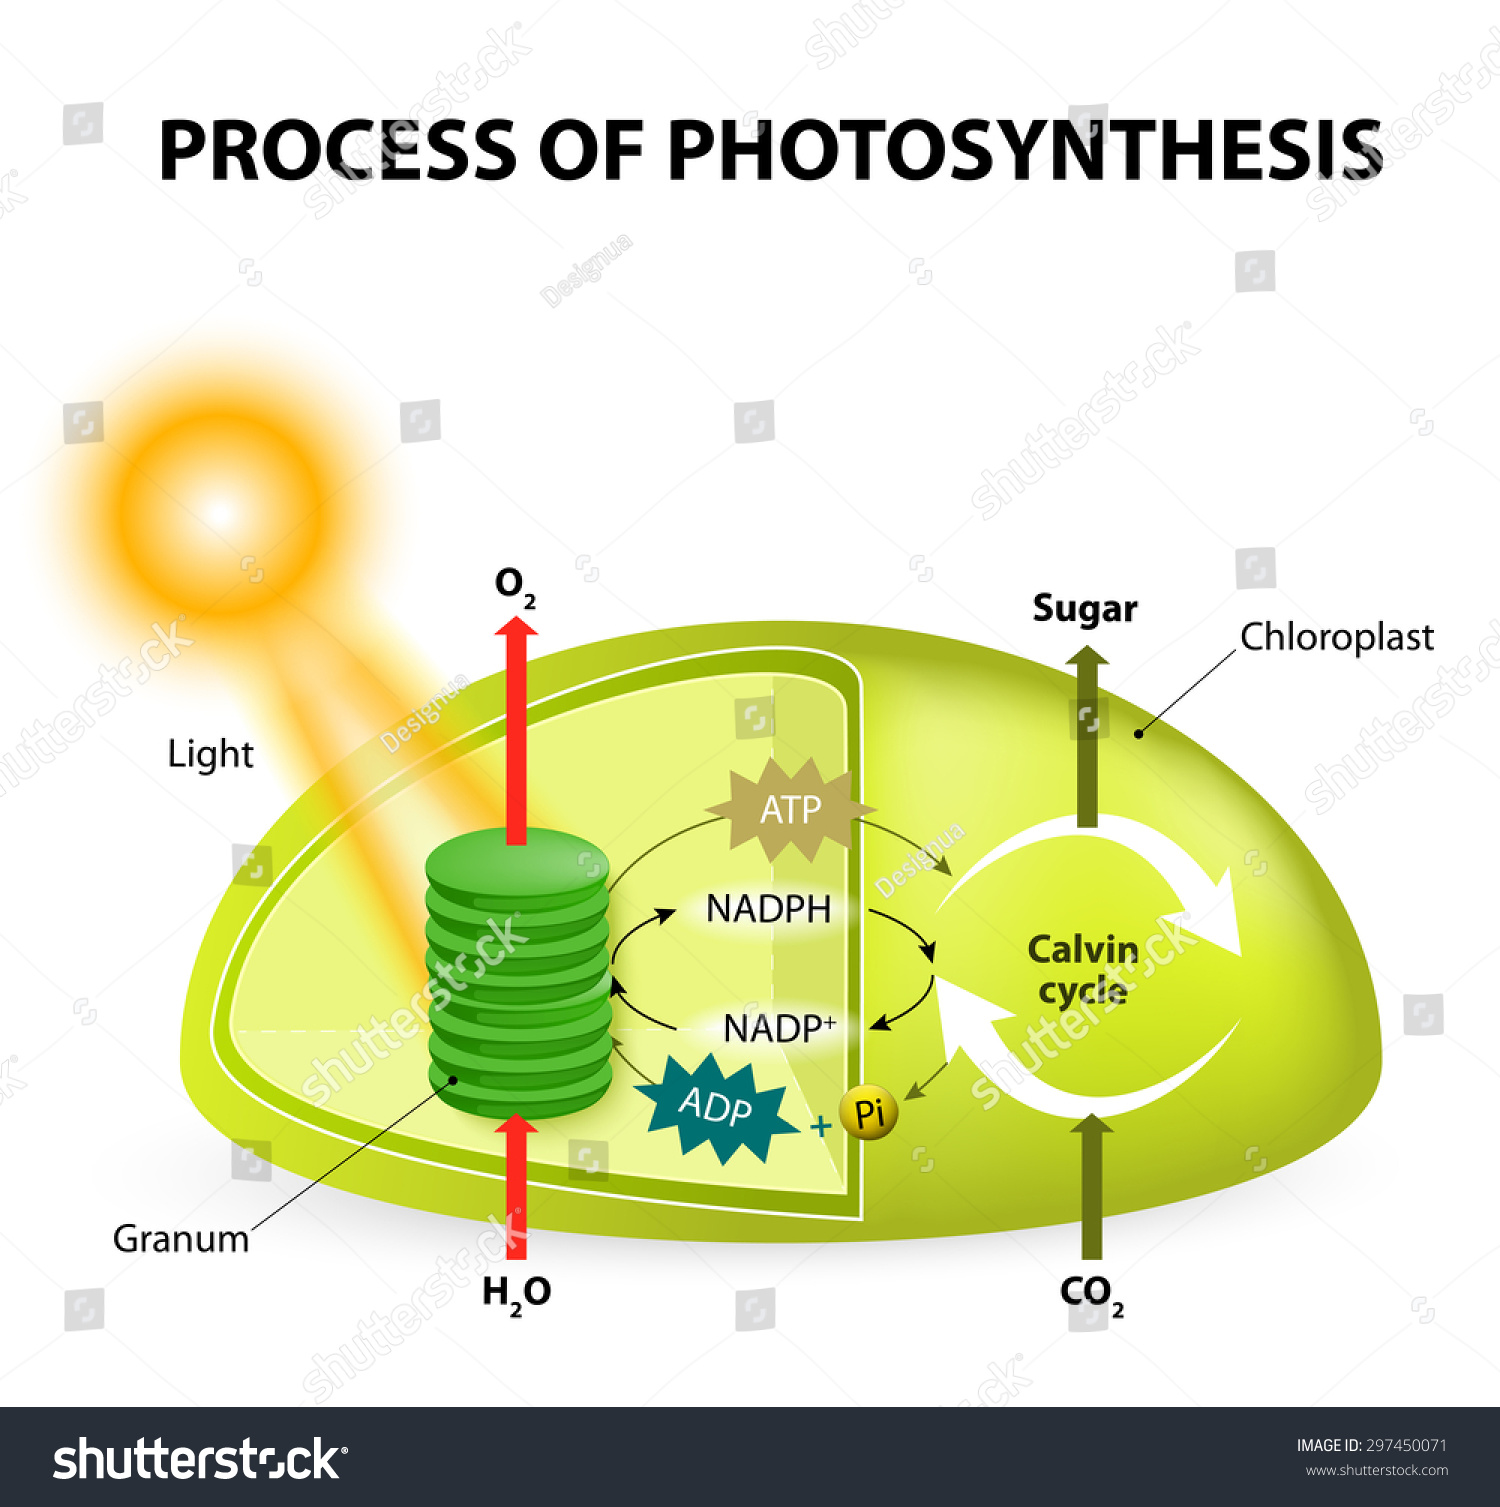 does photosythesis occur